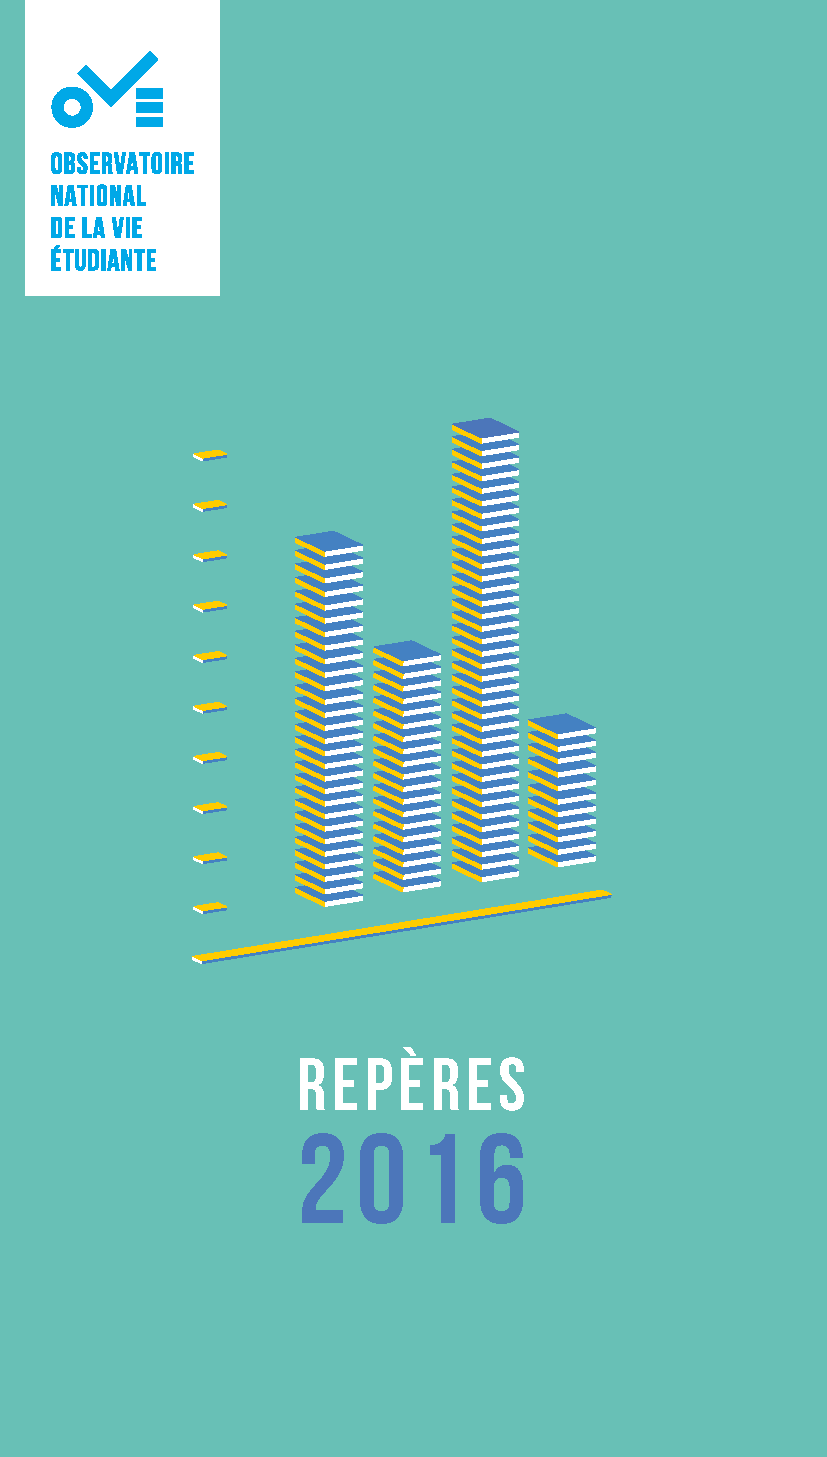 couv_reperes_2016